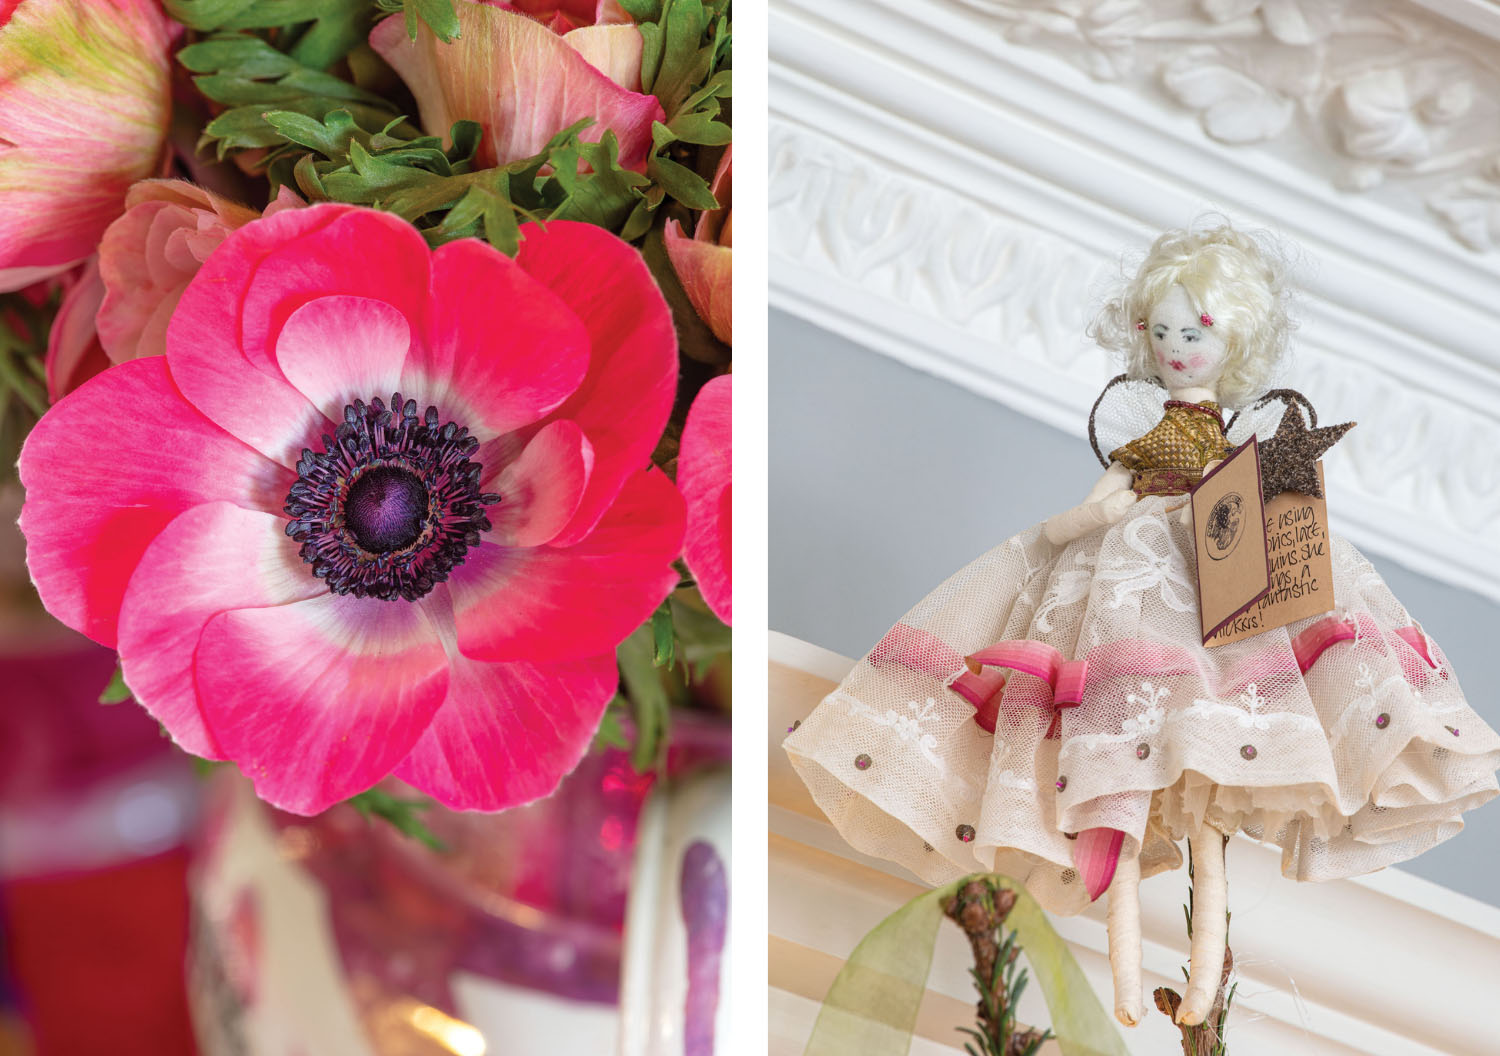 pink anemone; (right) Christmas tree topper